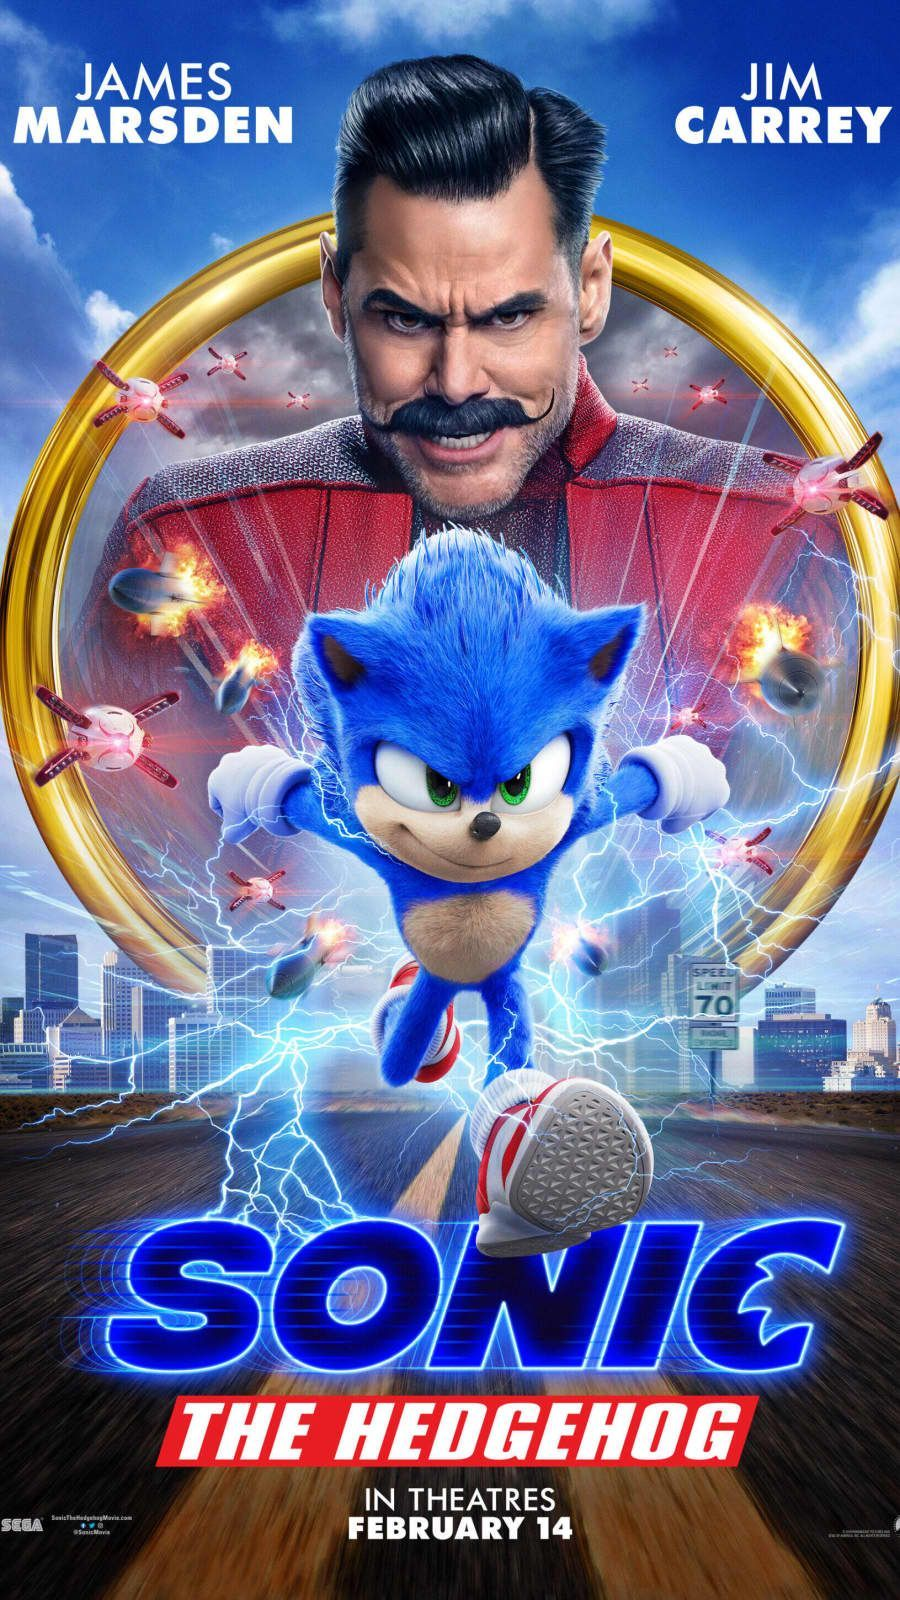 Incroyable  Mot-Clé 'Sonic The Hedgehog' Movie Sets Box Office Record On Opening Week